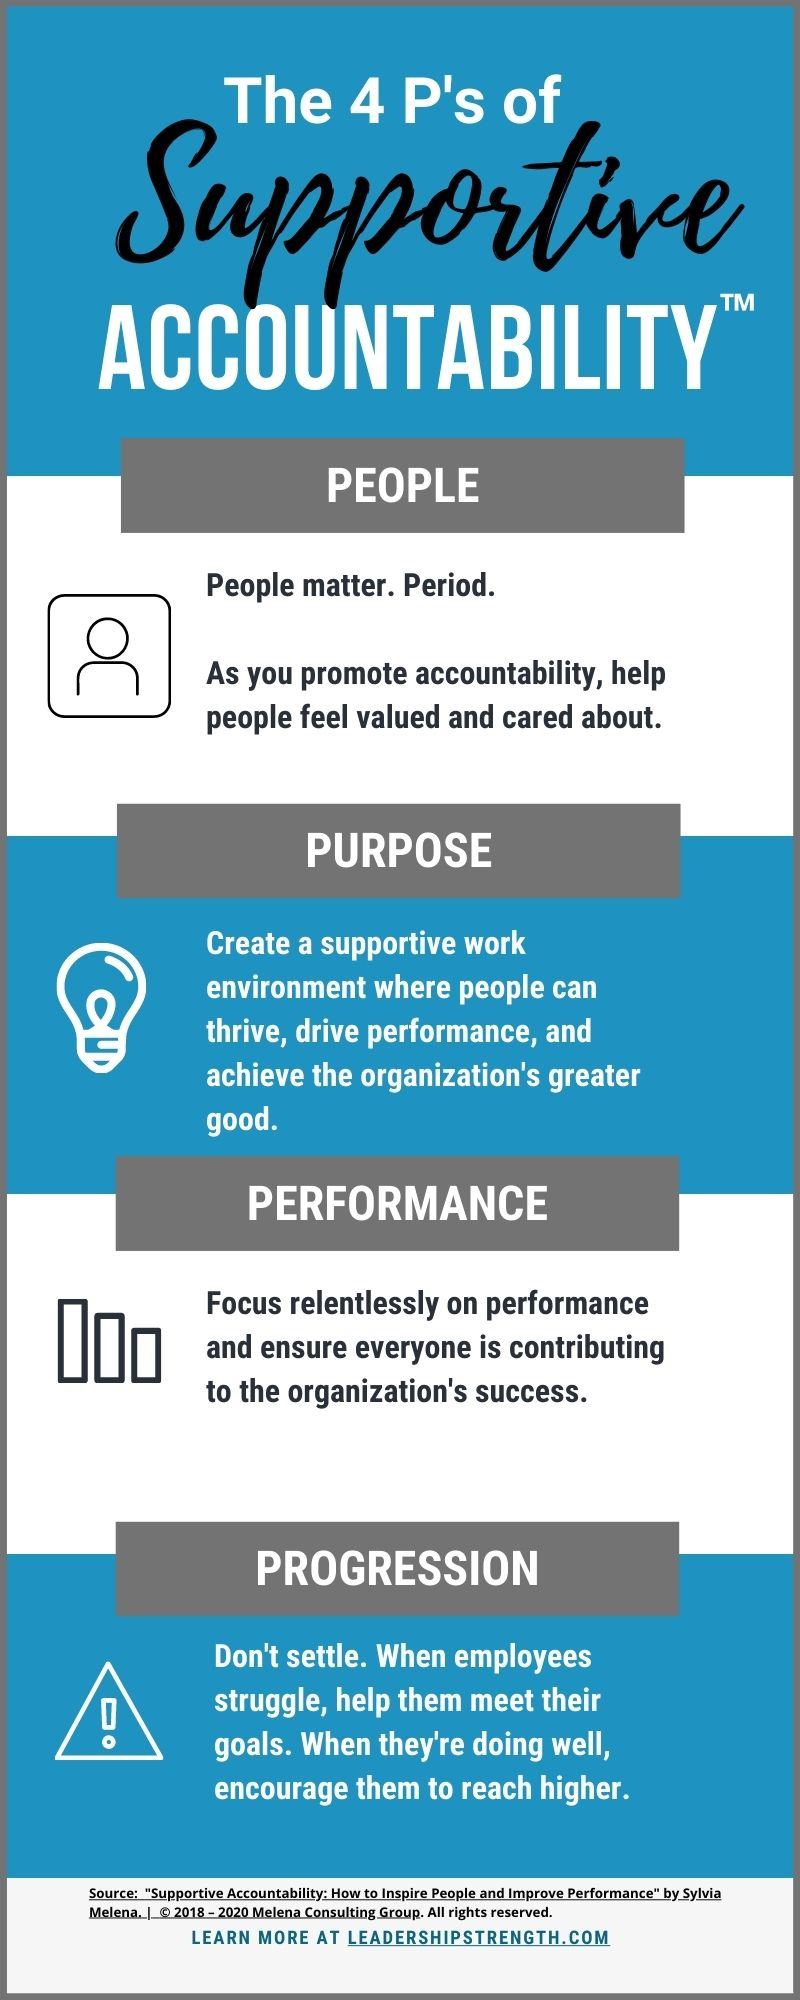 The 4 P's of Accountability Infographic